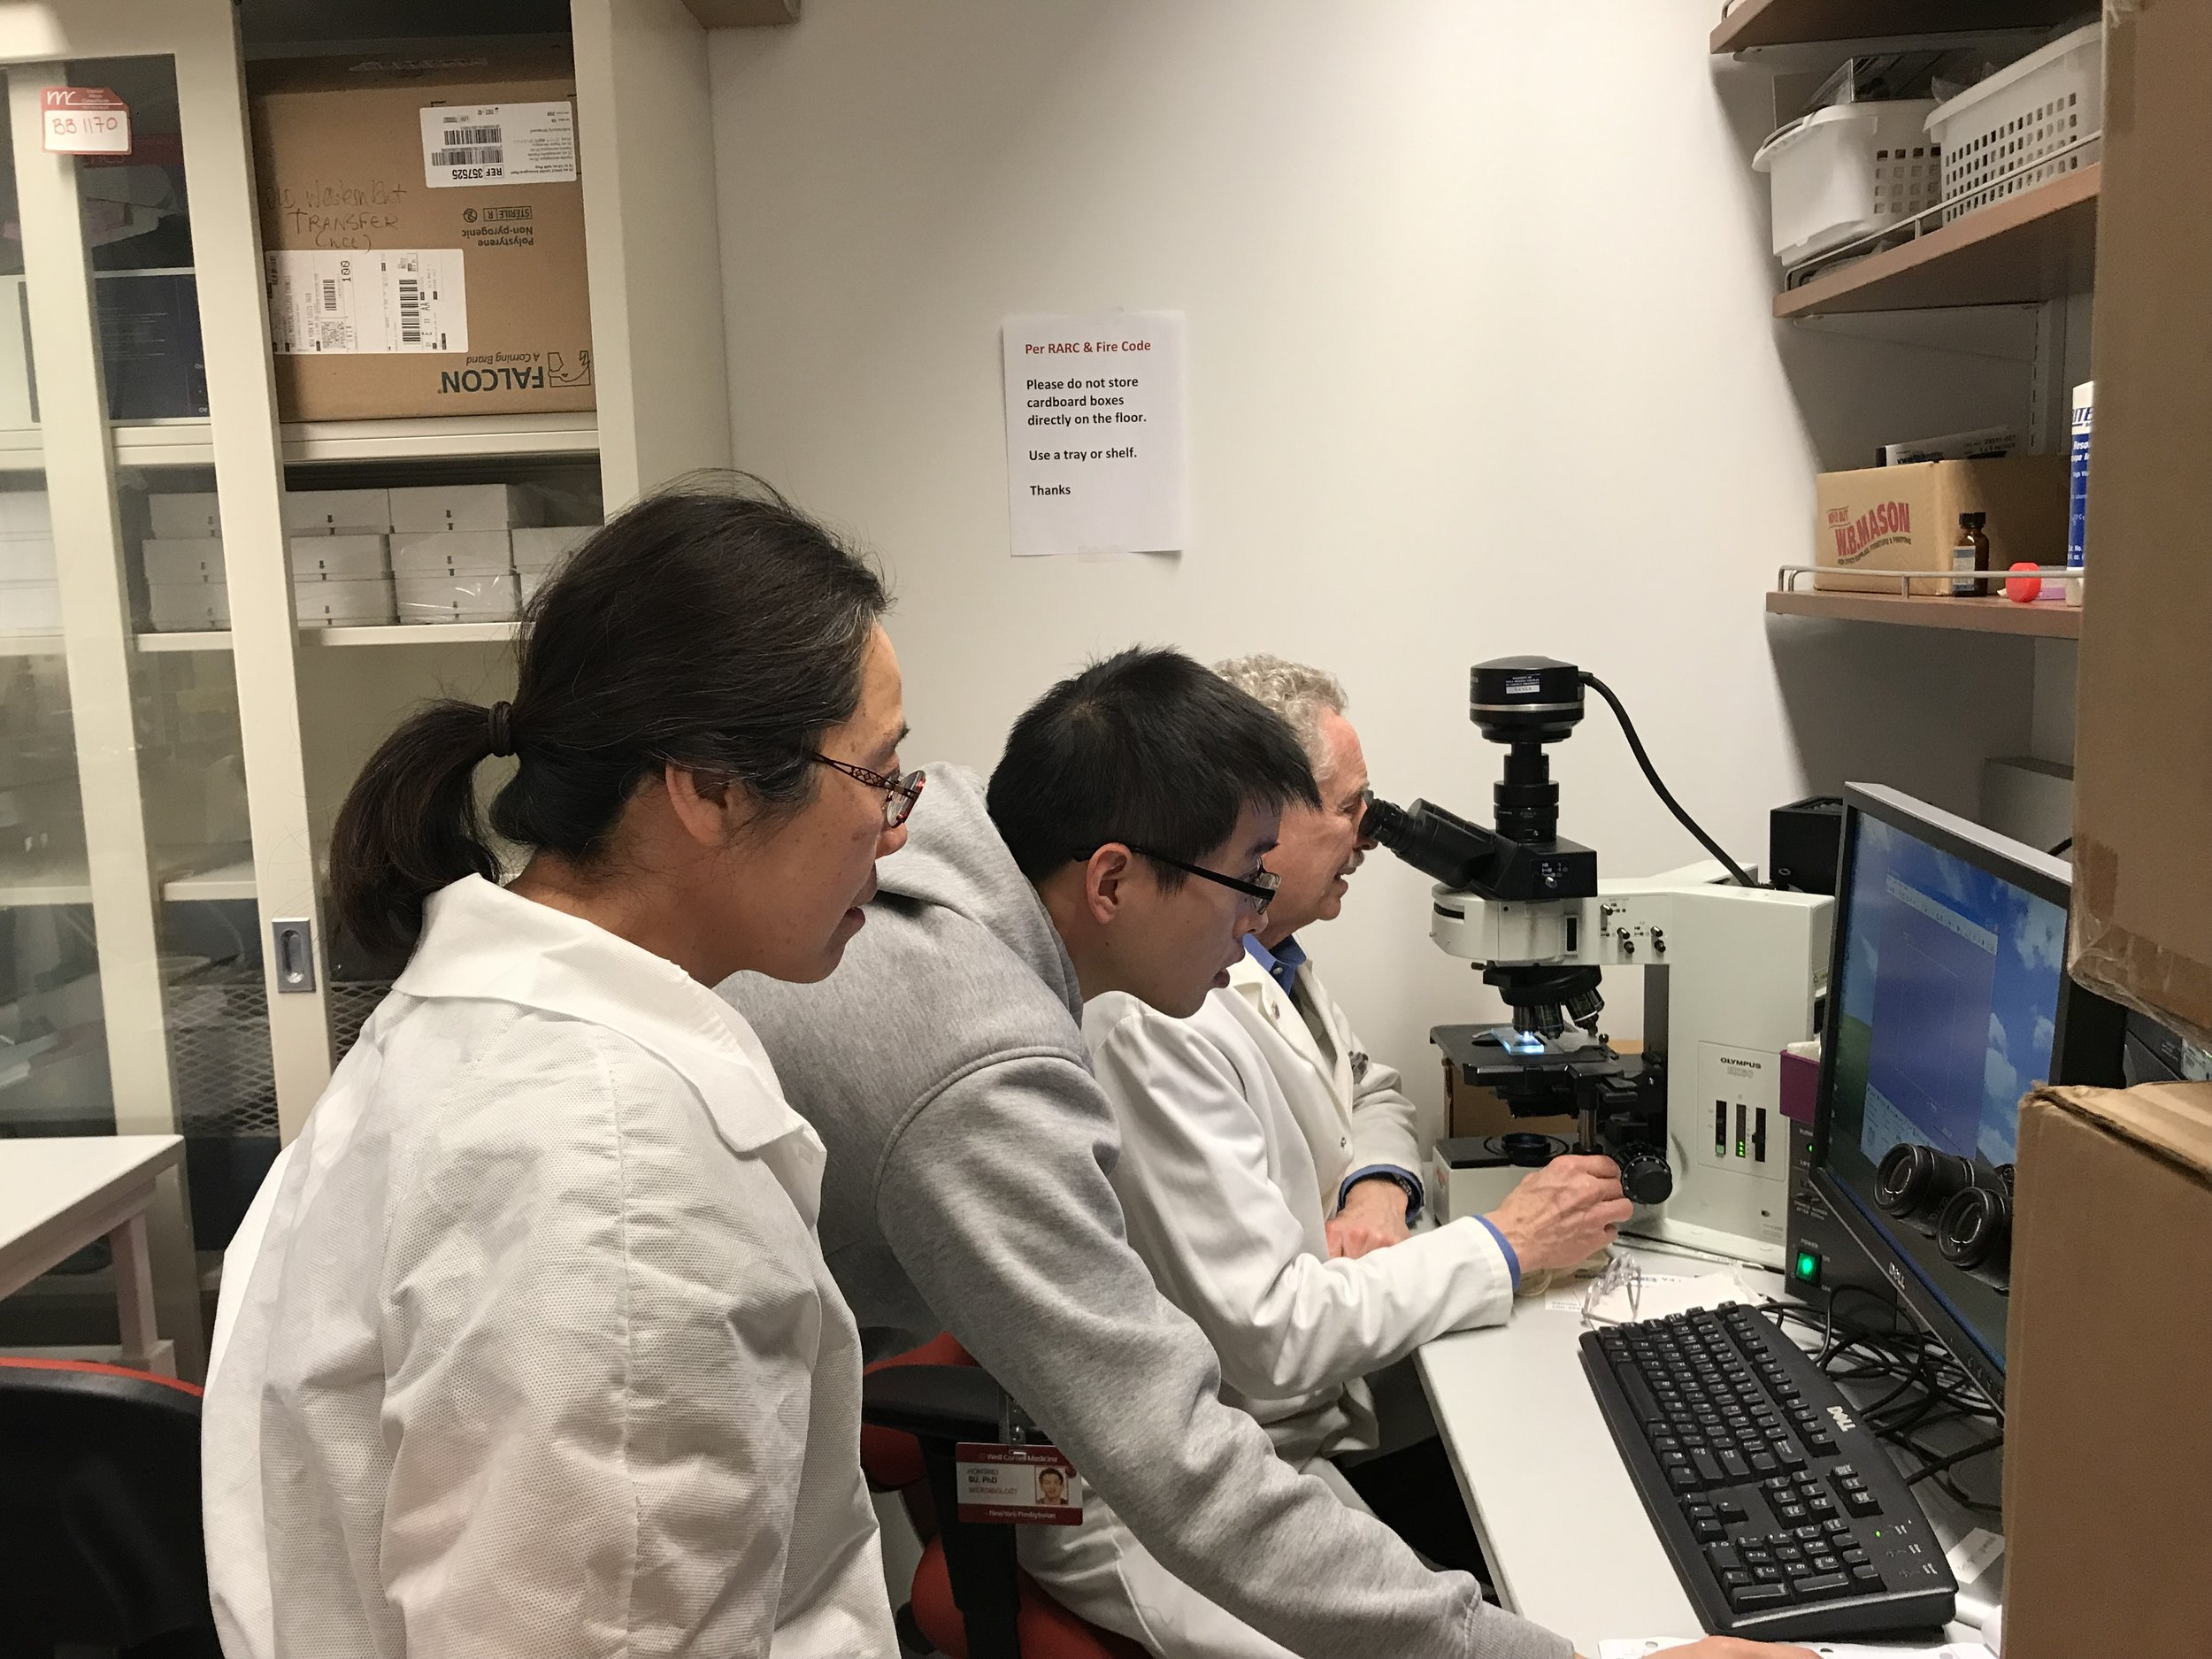 Carl and team focusing on isolated neutrophils in the microscope room.